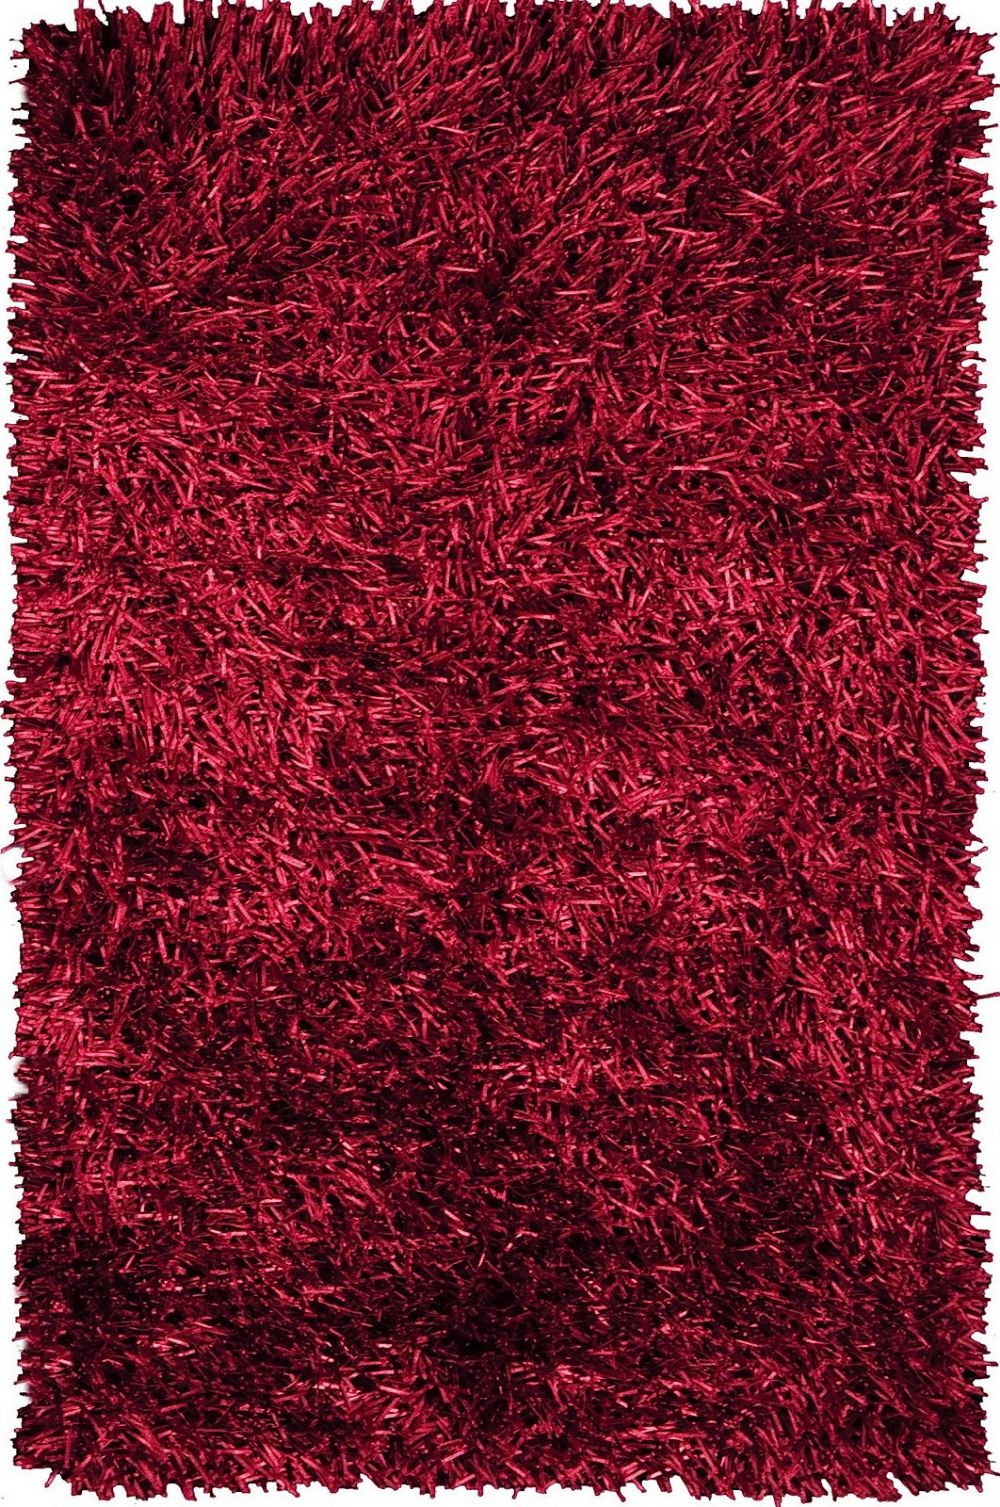 foreign accents elementz - fettuccine contemporary area rug collection